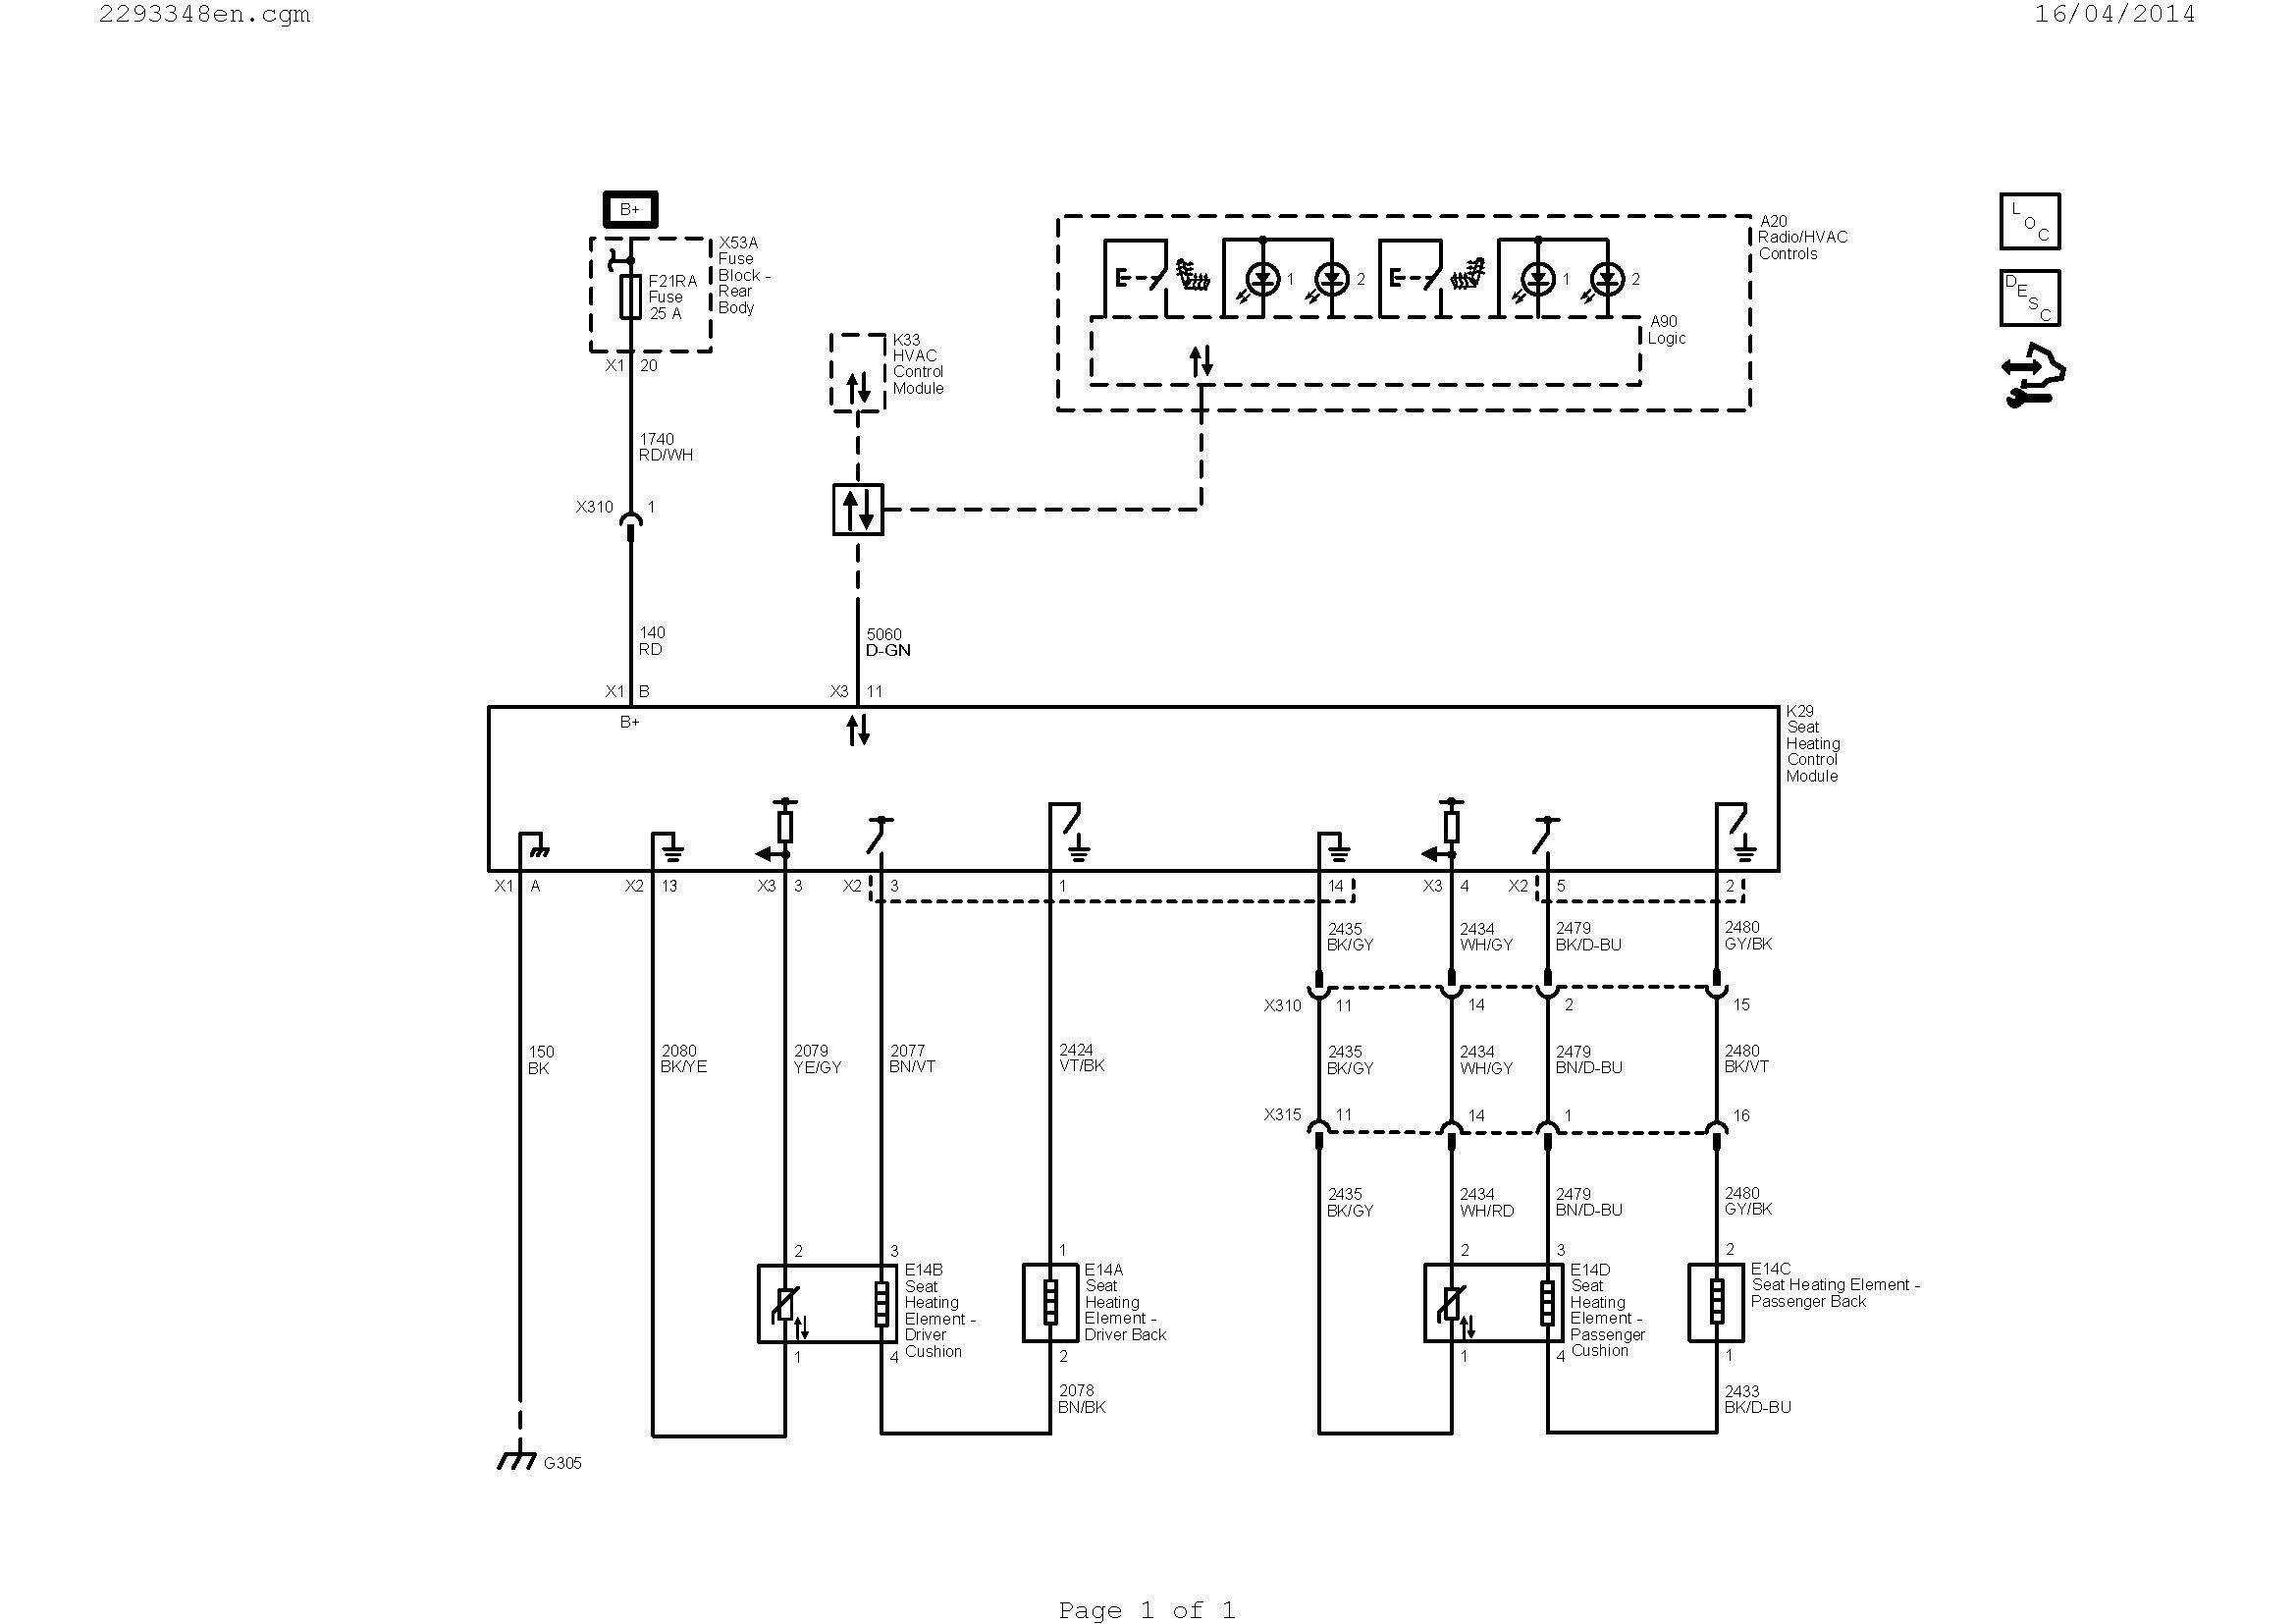 sprinkler wiring diagram Collection-Wiring Diagram for A Relay Switch Save Wiring Diagram Ac Valid Hvac Hvac Wiring Diagram 5-t